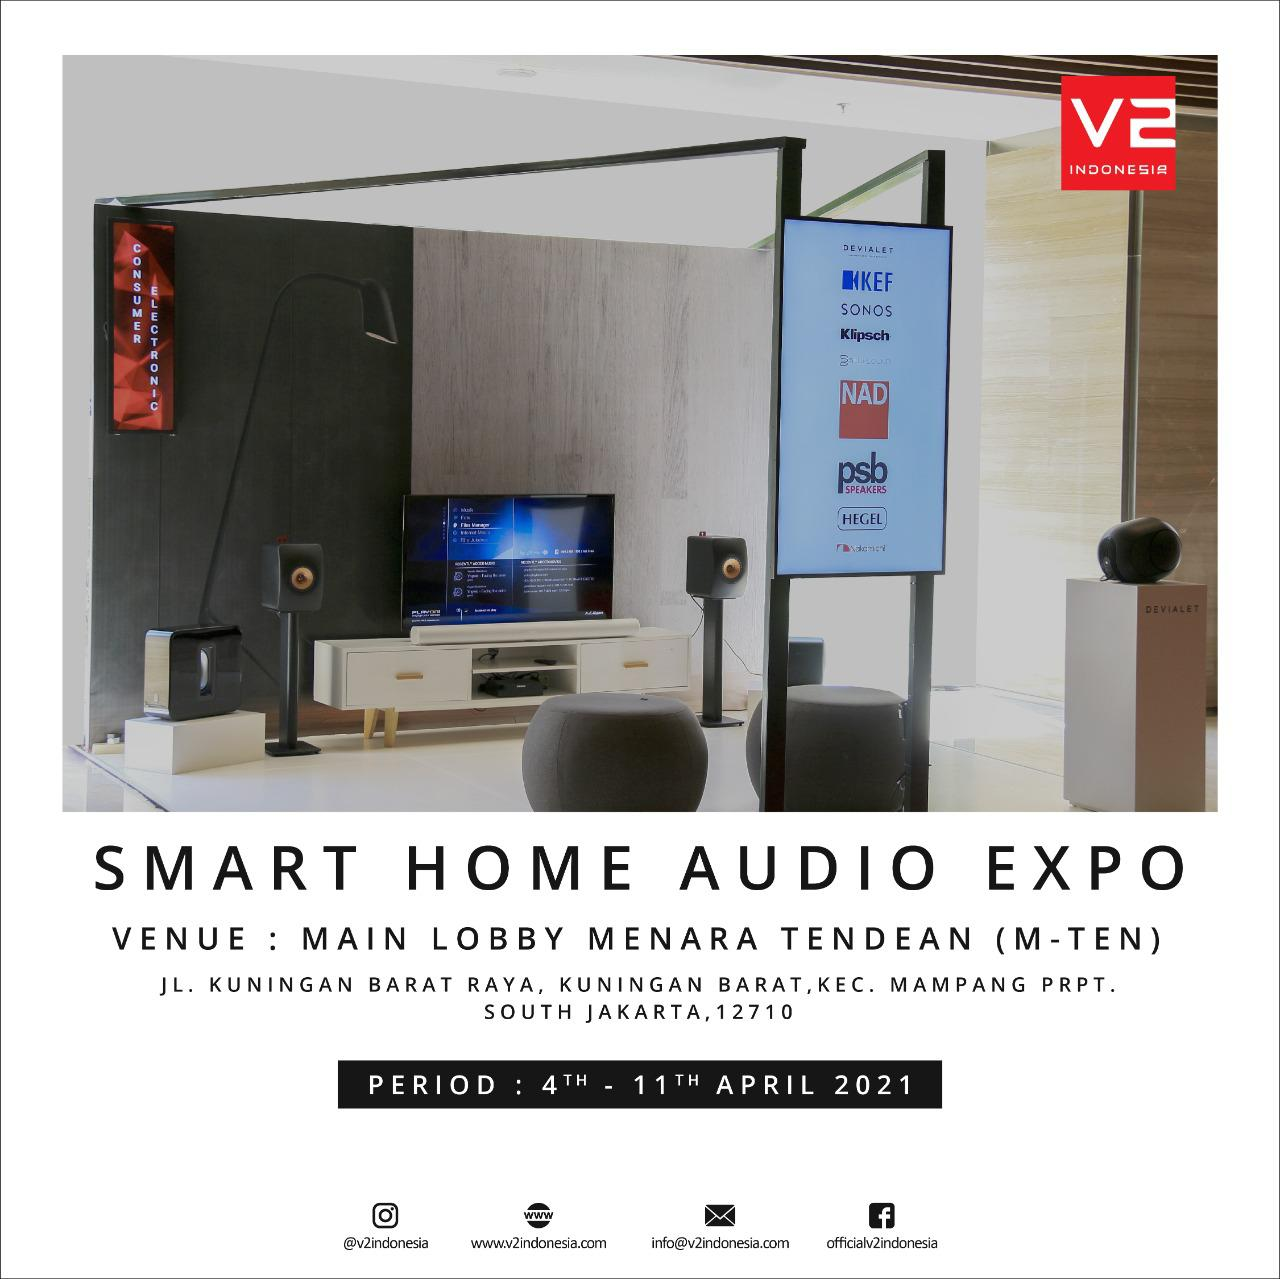 Smart Home Audio Expo